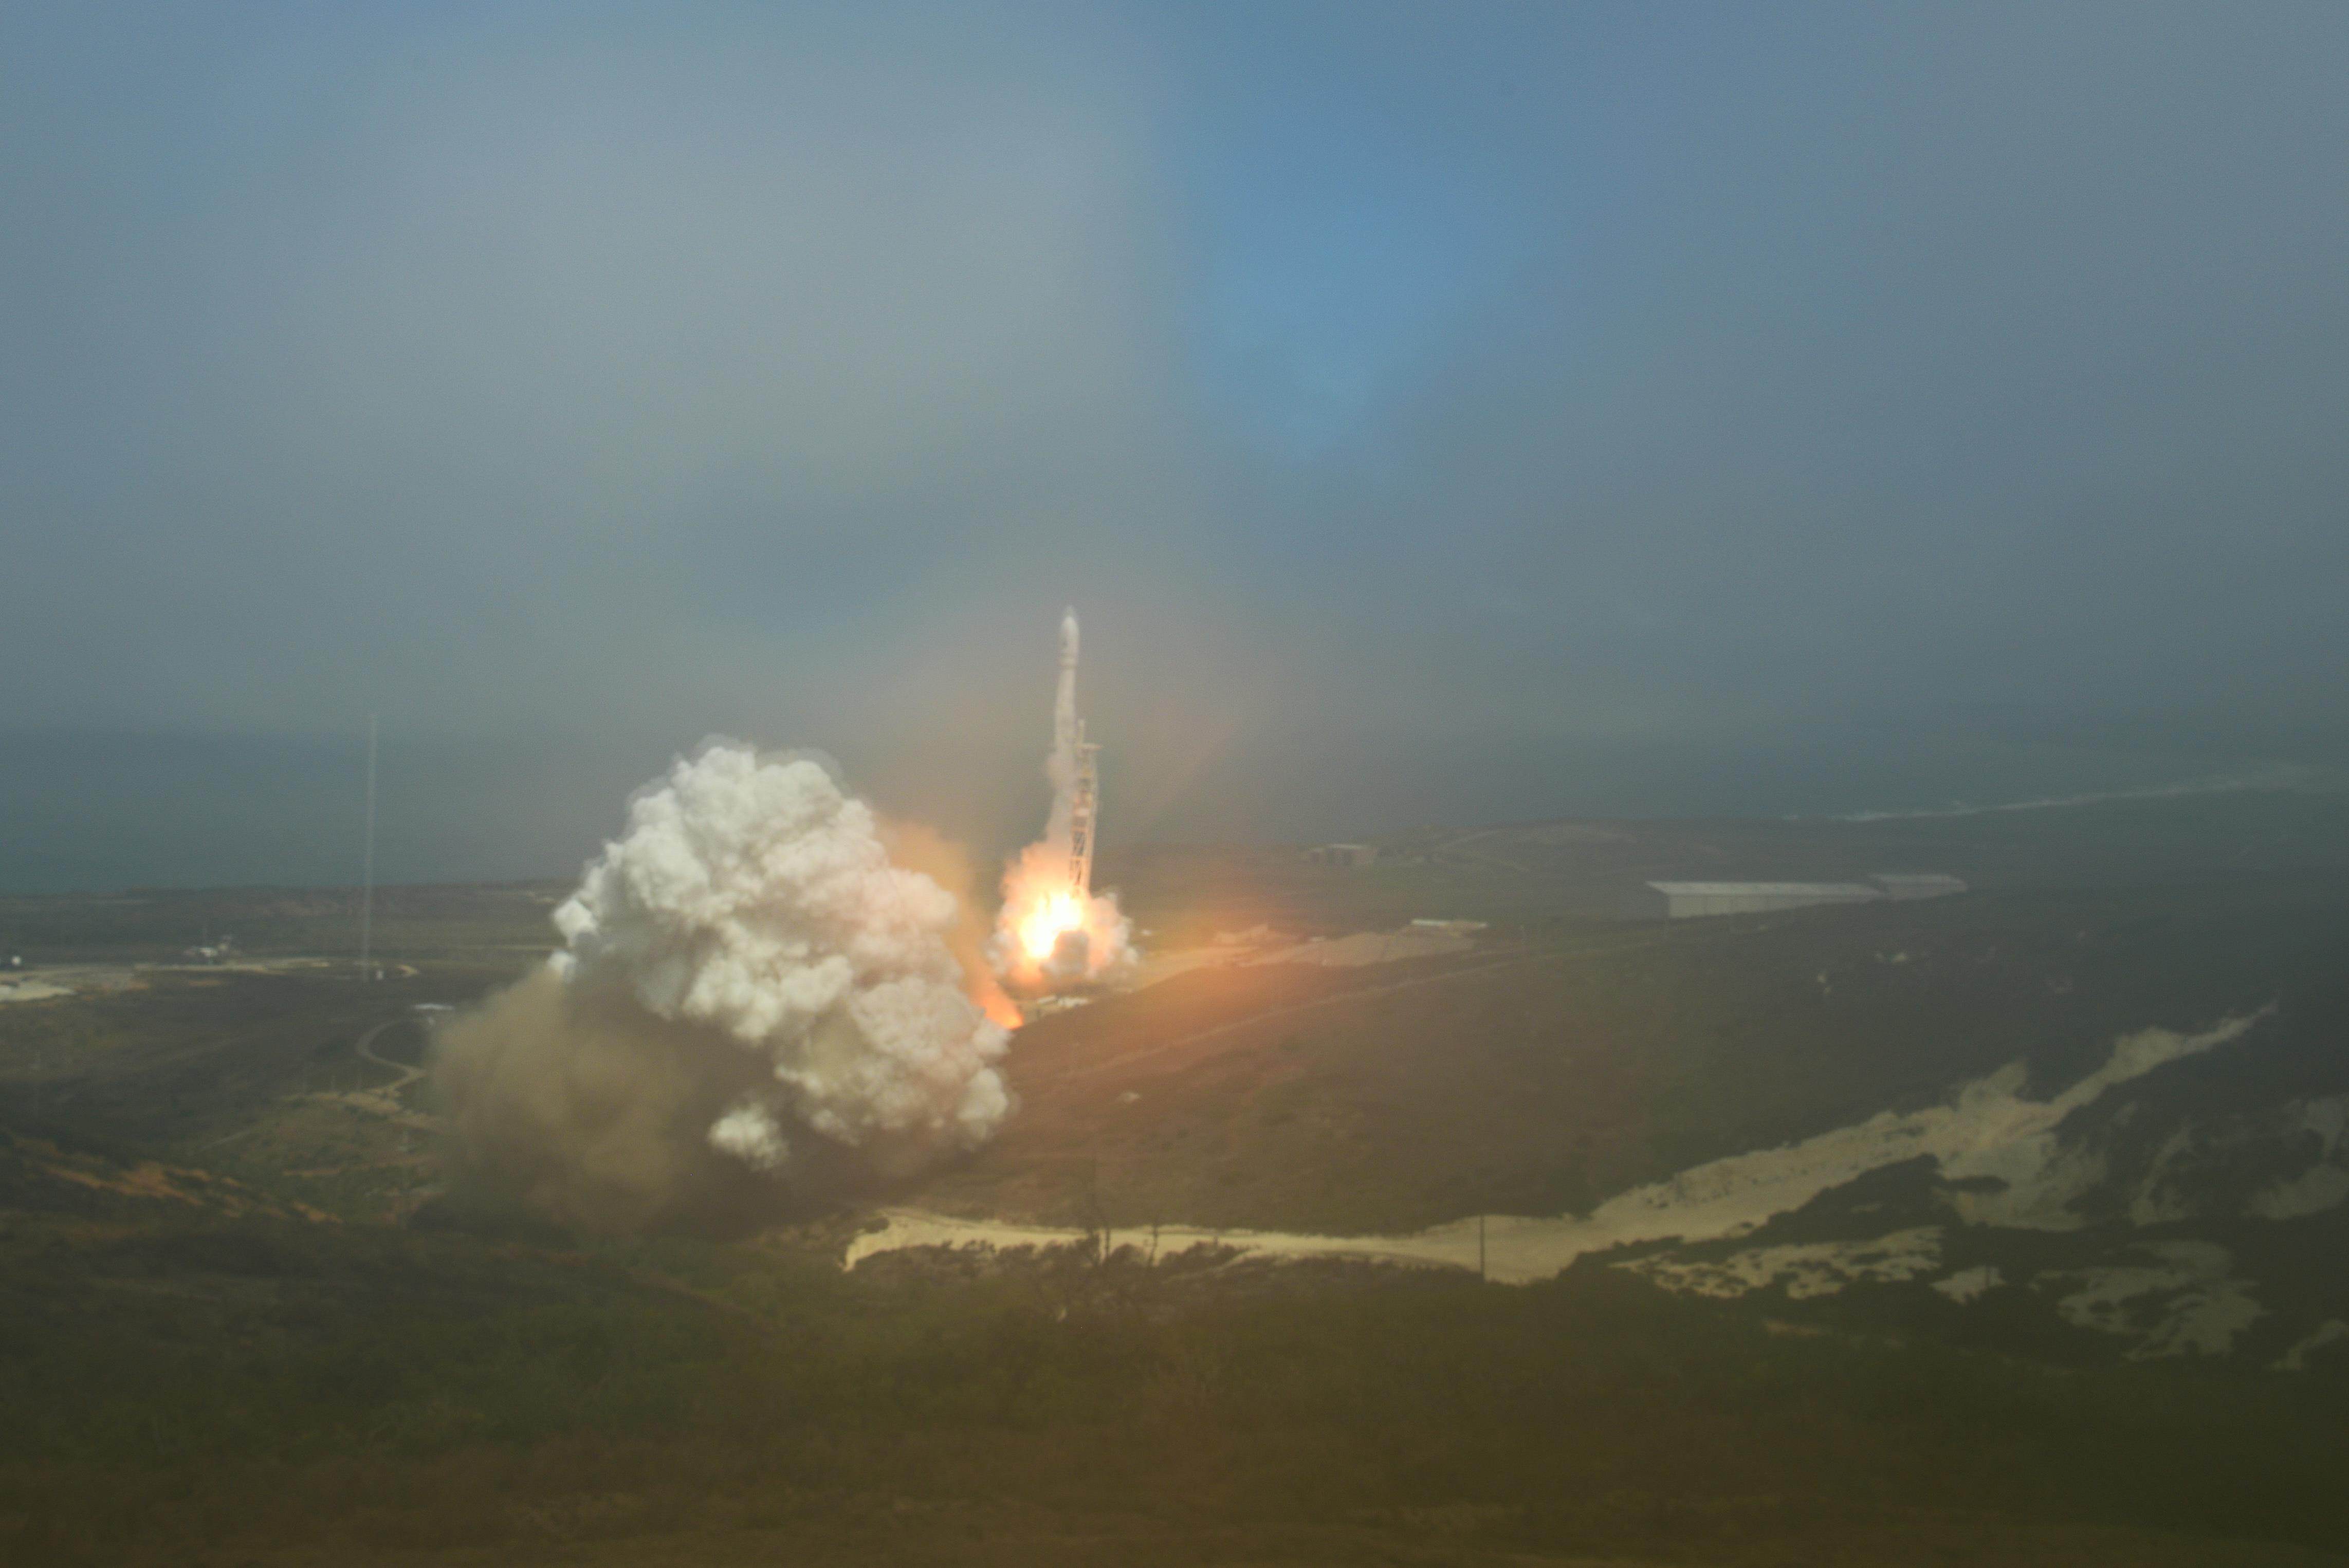 FALCON 9 LAUNCHES FROM VANDENBERG